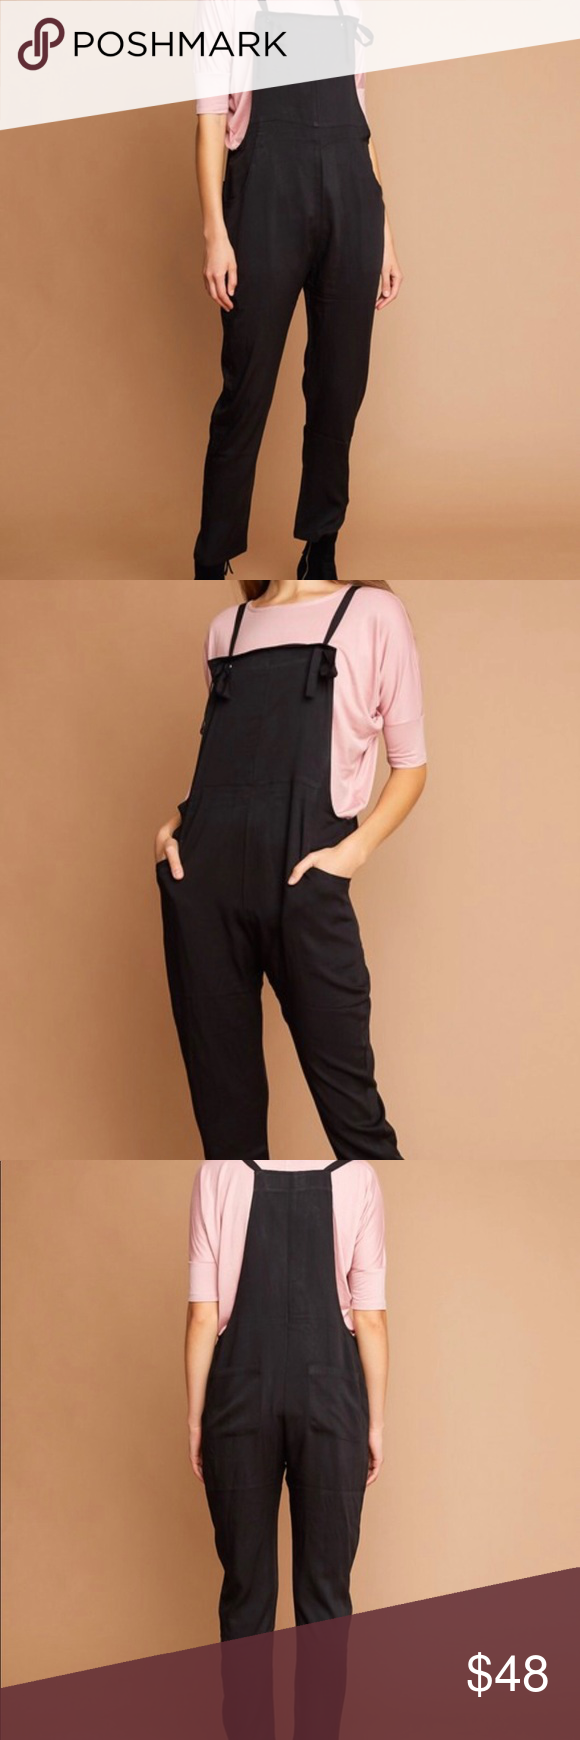 c2954a982b7 Black Tie Strap Overalls Lightweight overalls w  adjustable tie straps and  front and back pockets 100% rayon Hayden Pants Jumpsuits   Rompers